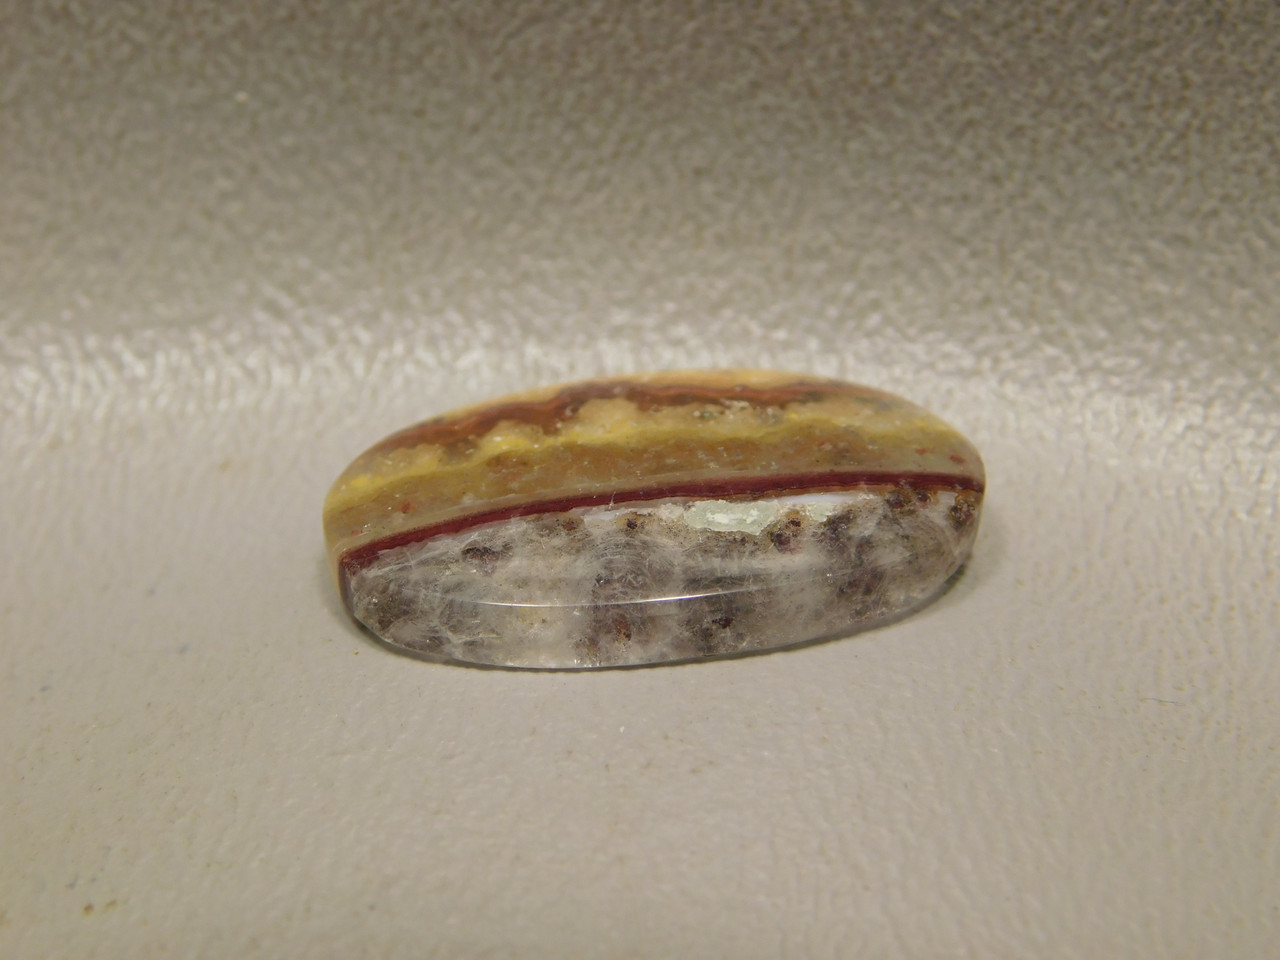 Candy Opal Red Translucent Banded Cabochon Oval Ring Stone #5